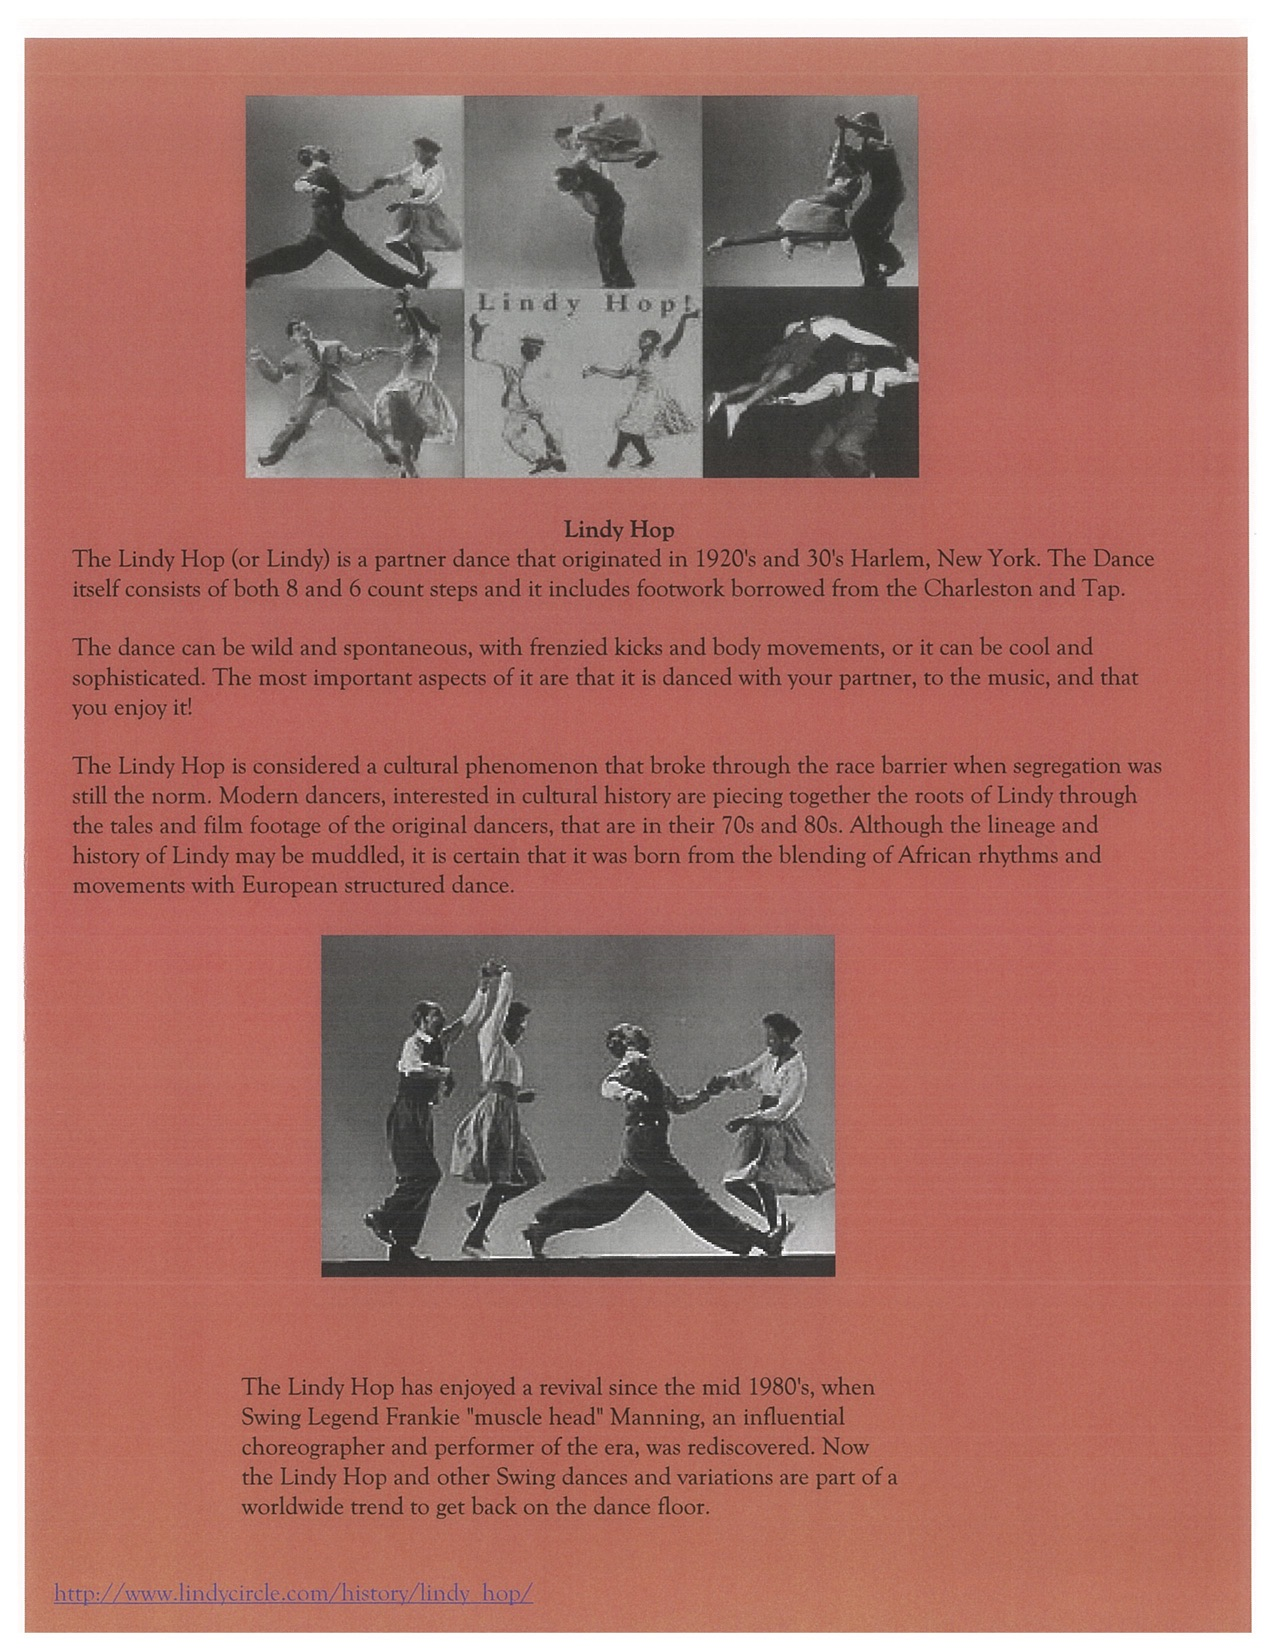 Page 6. The Lindy Hop with two images of people dancing.